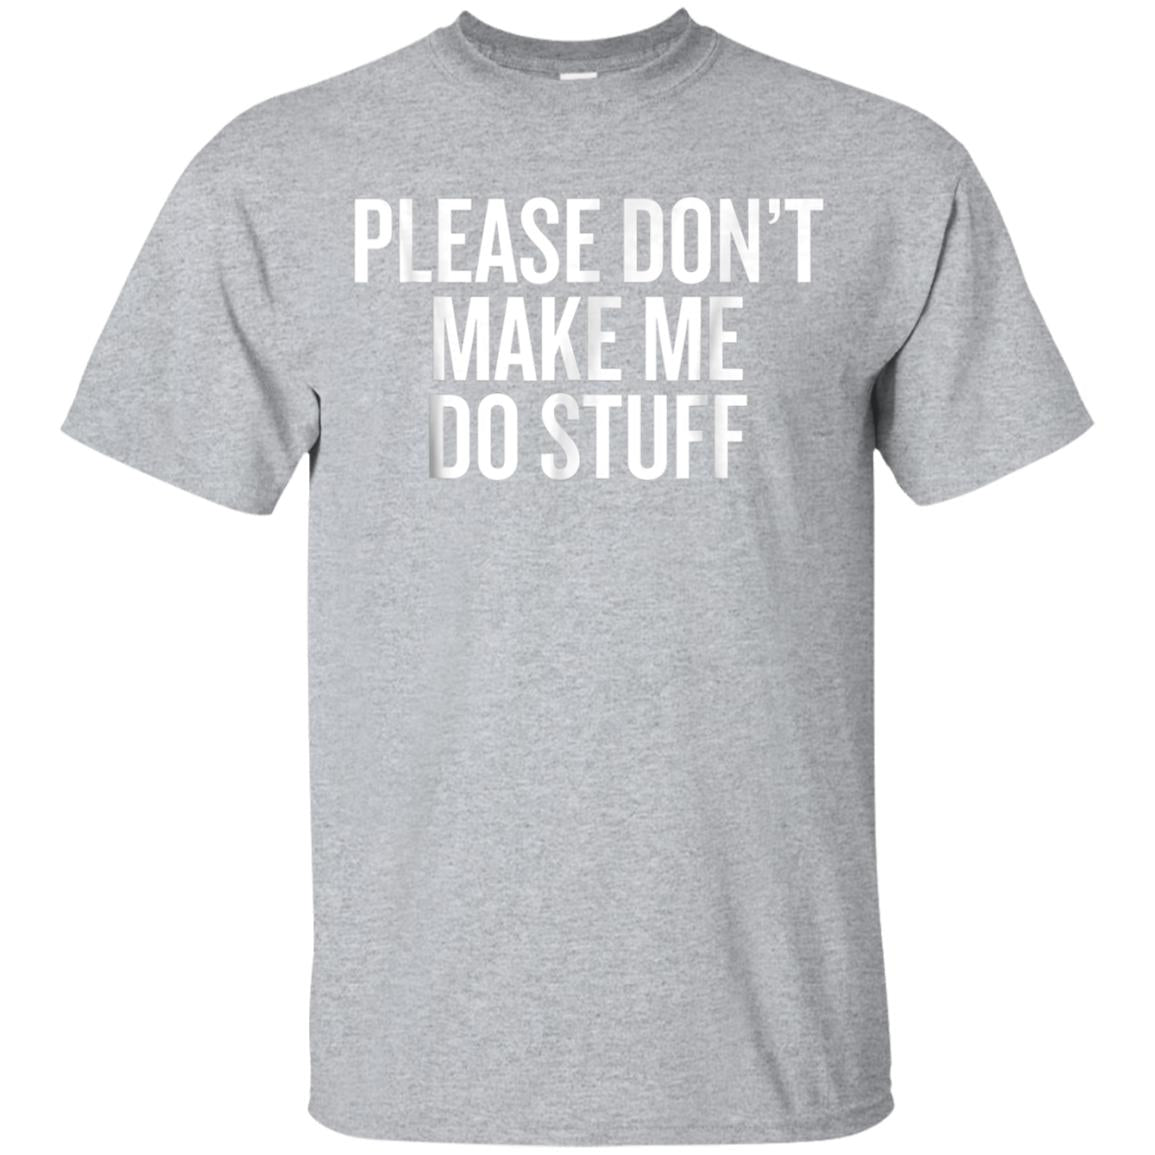 Please don't make me do stuff teens kids funny t-shirt 99promocode